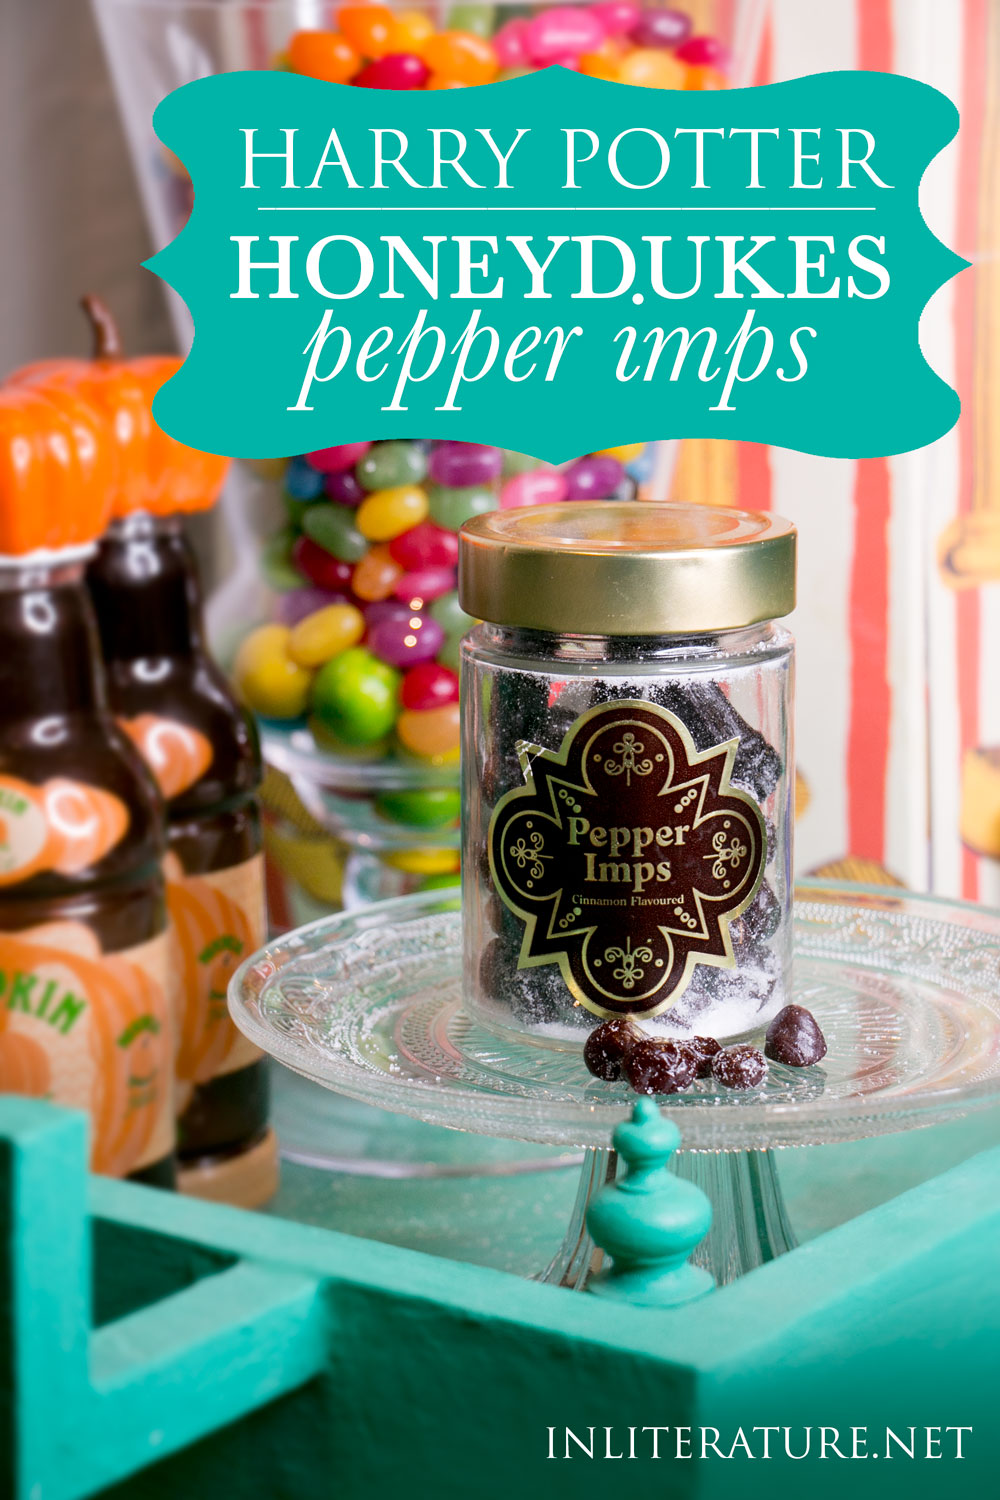 Make your own Pepper Imps at home, where you can control how much they make your ears smoke from the heat!